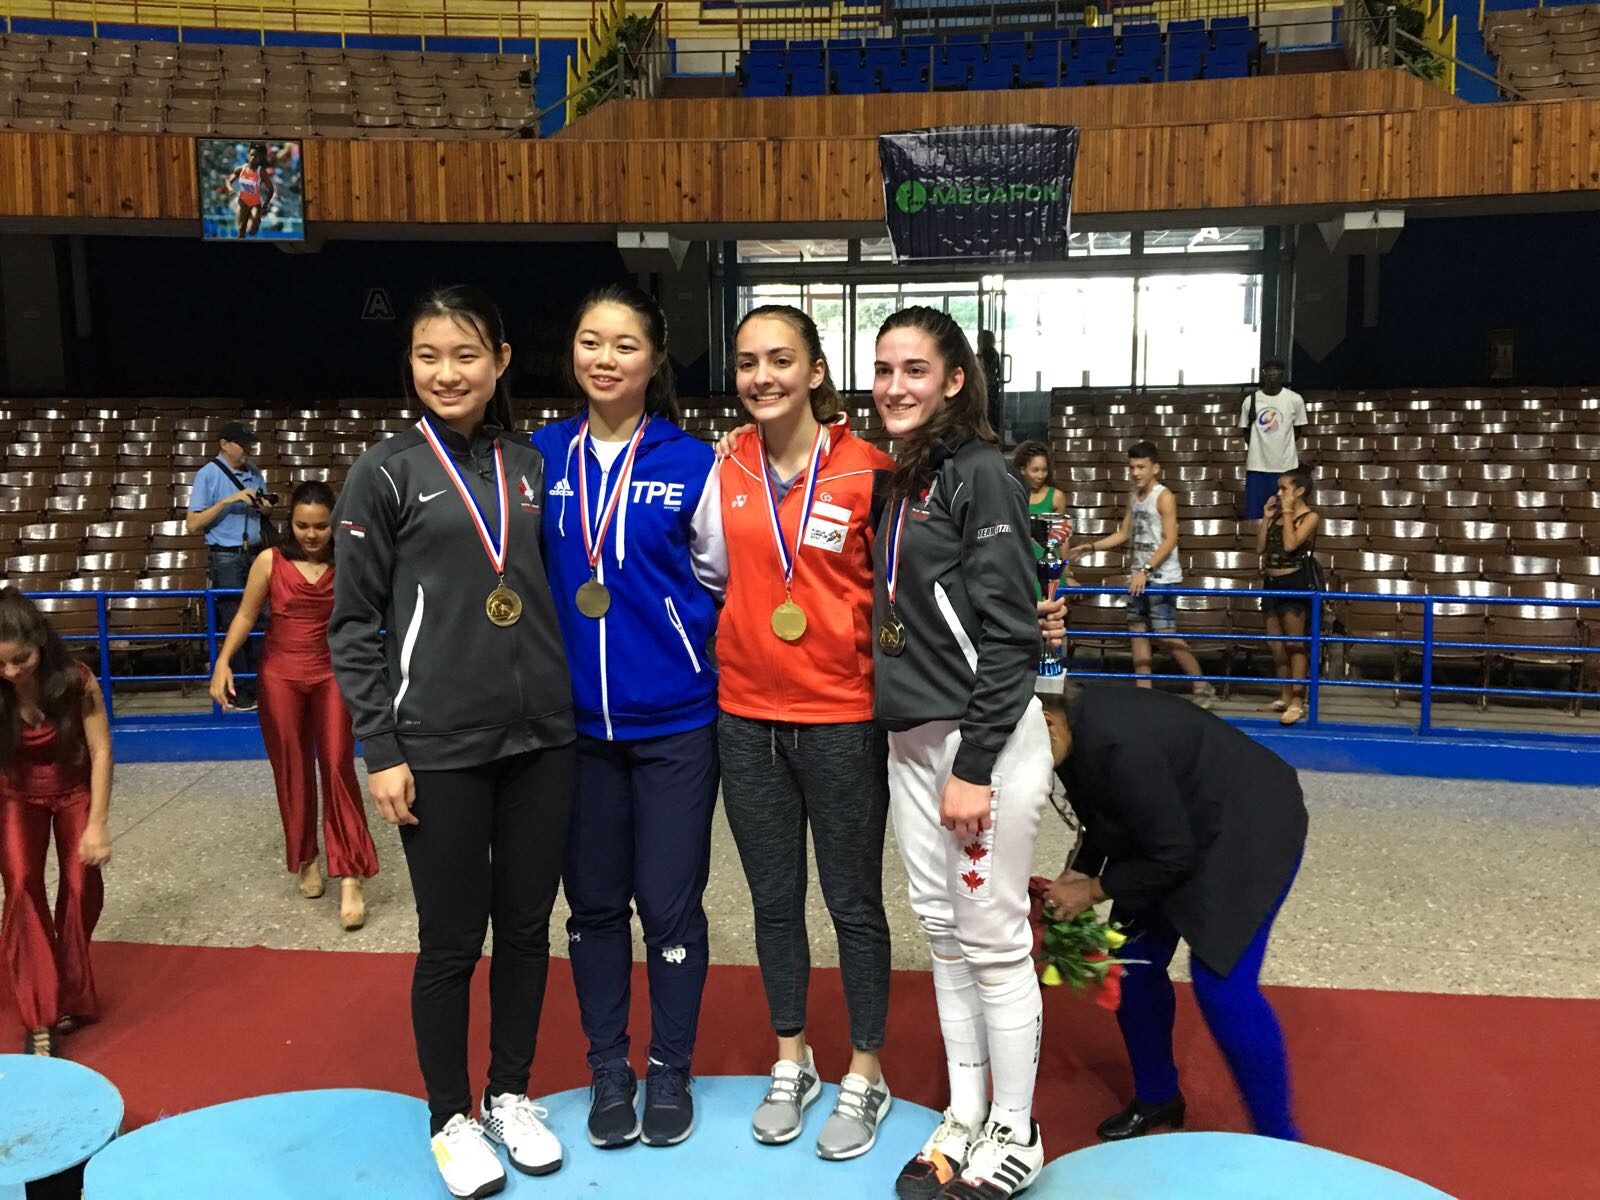 In photo, from left to right: Ying CAO (CAN), Xiao-Qing Tsai (TPE), Amita Berthier (SGP),Naomi MOINDROT-ZILLIOX (CAN). Congratulations to the medallists!